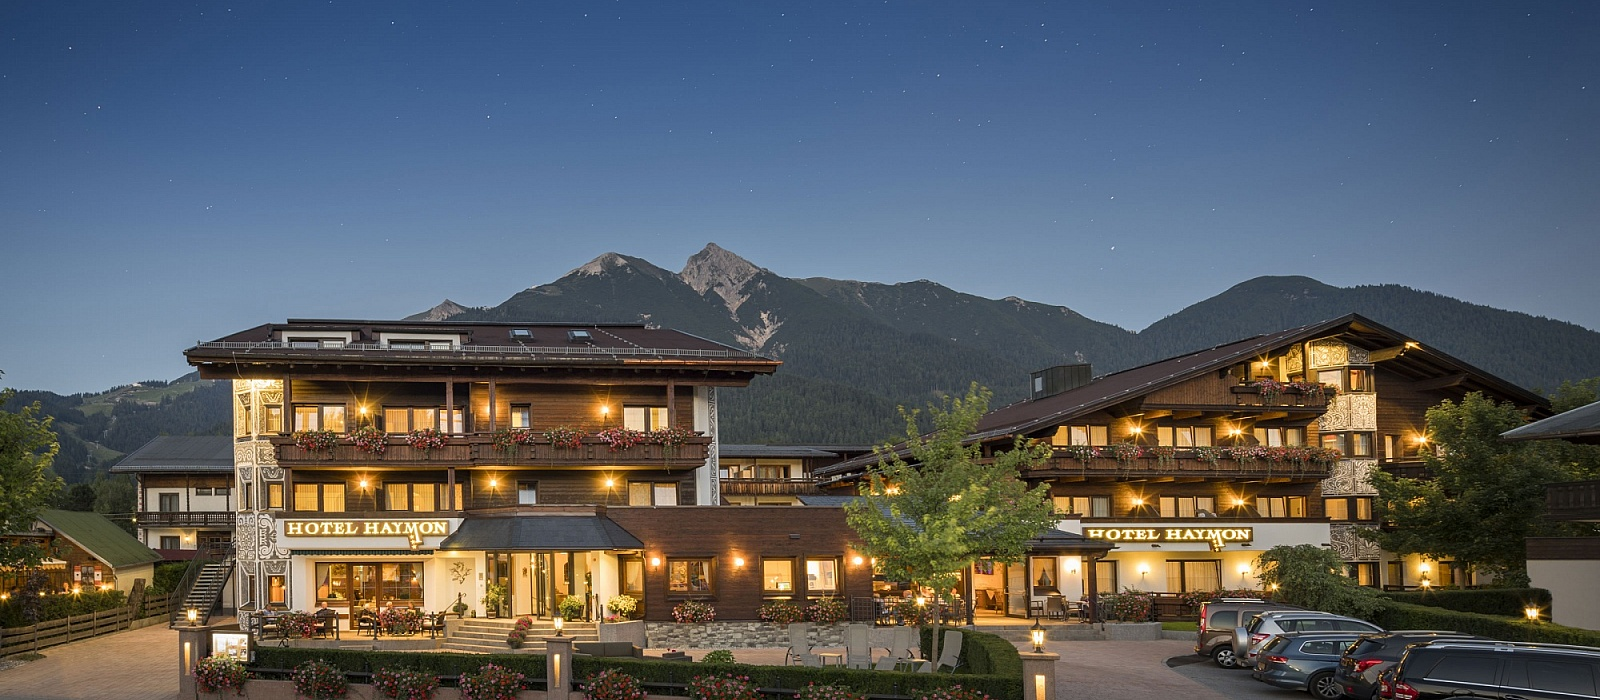 3 star hotels in Seefeld